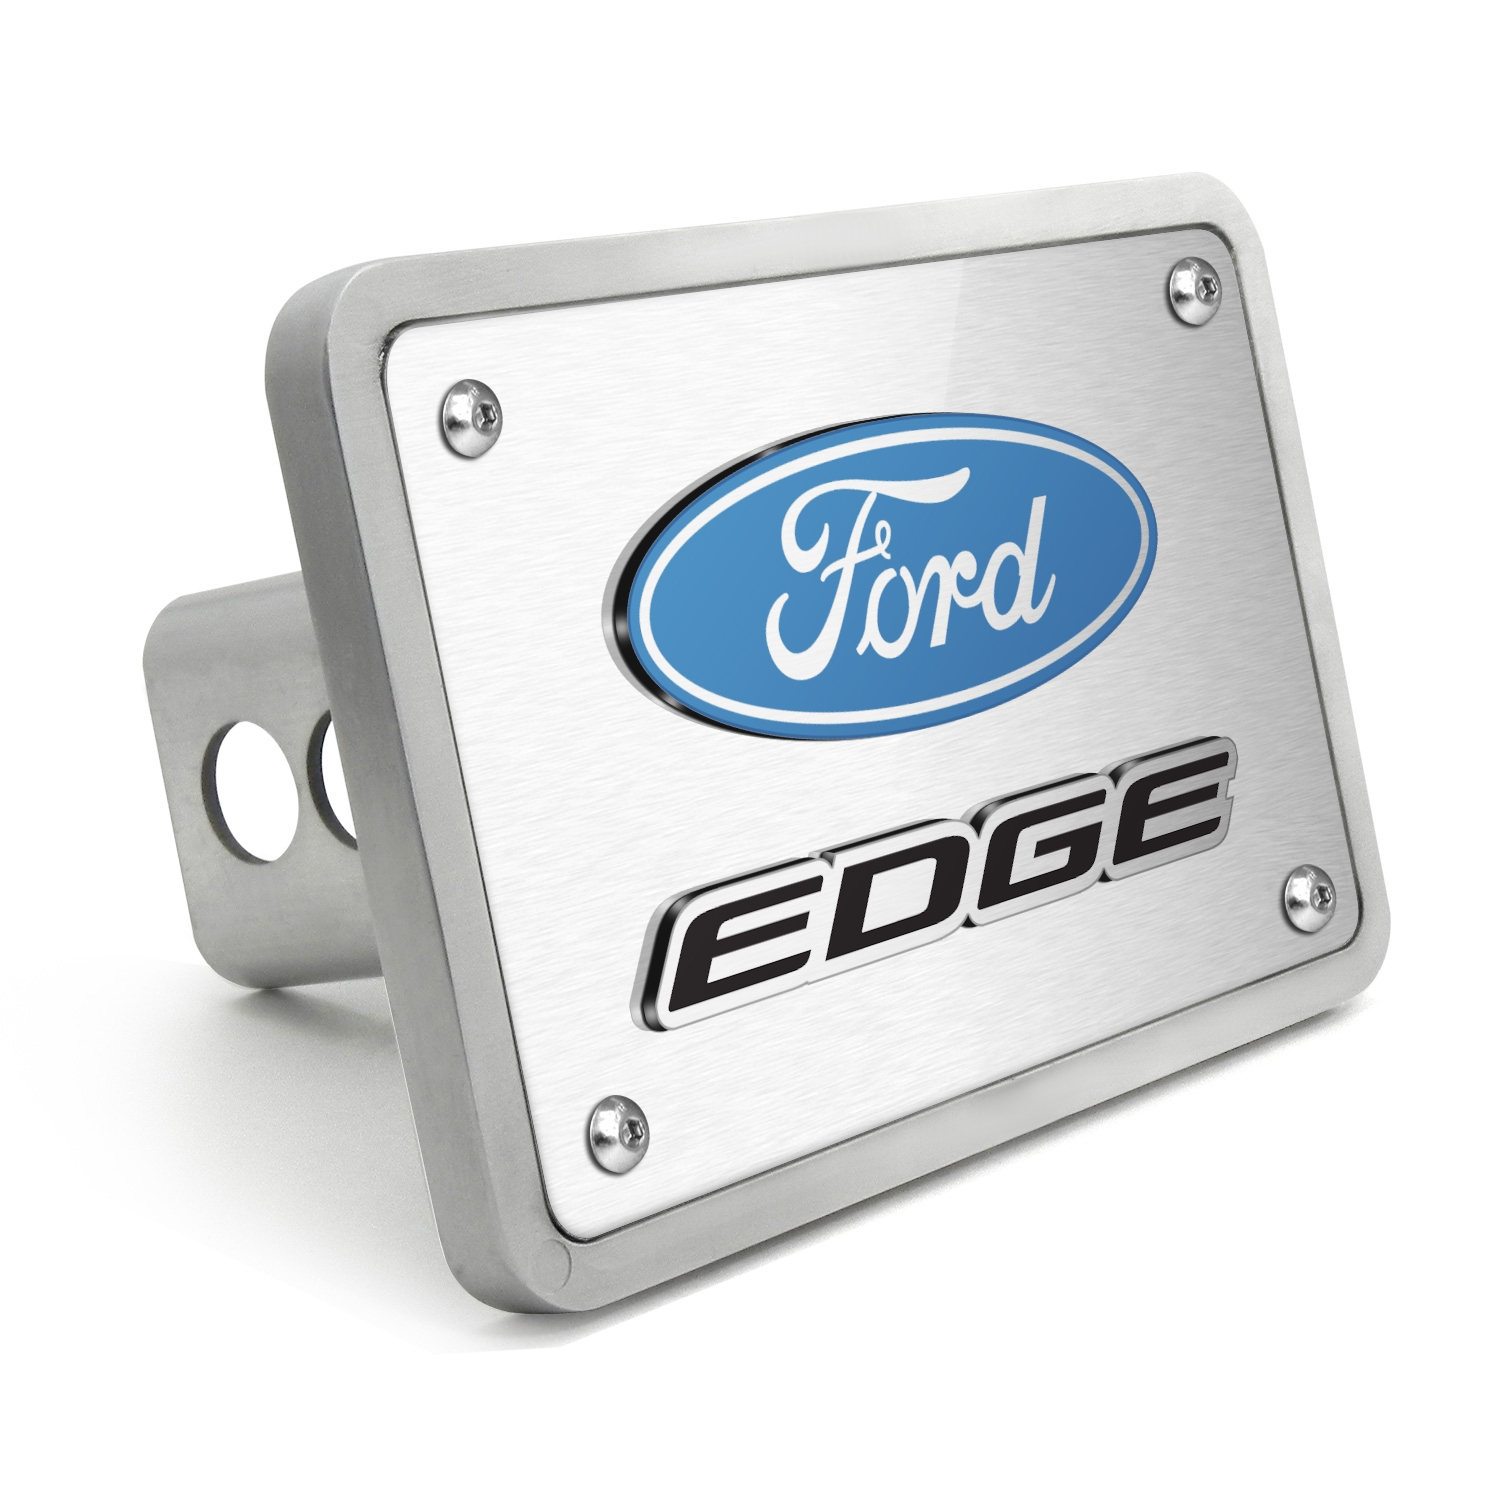 "Ford Edge 3D Logo Brushed 3/8"" thick Billet Aluminum 2 inch Tow Hitch Cover"